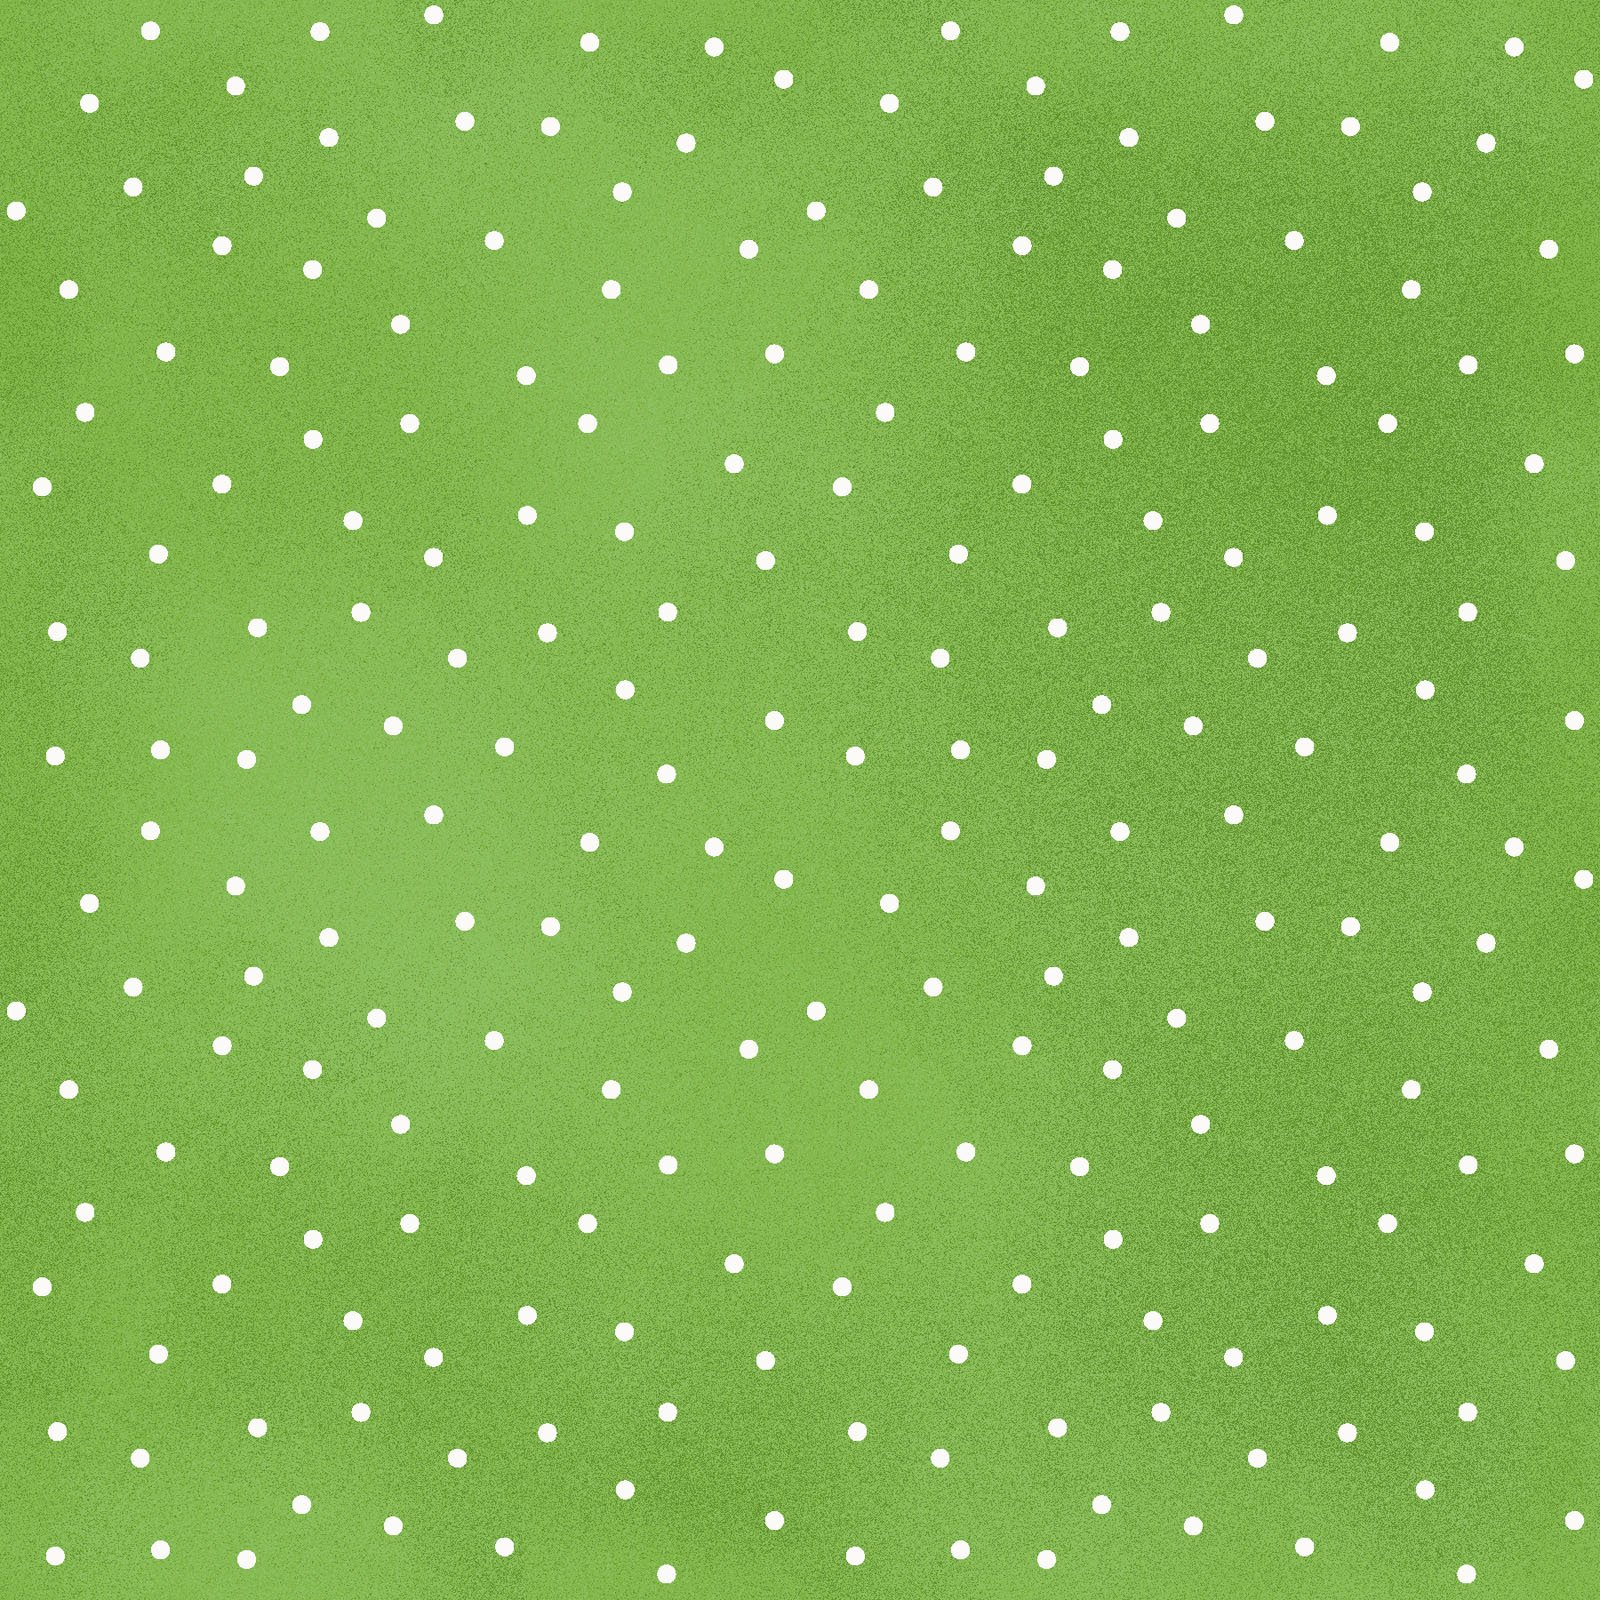 EESC-8119 GG - BEAUTIFUL BASICS BY MAYWOOD STUDIO SCATTERED DOT SPRING GREE